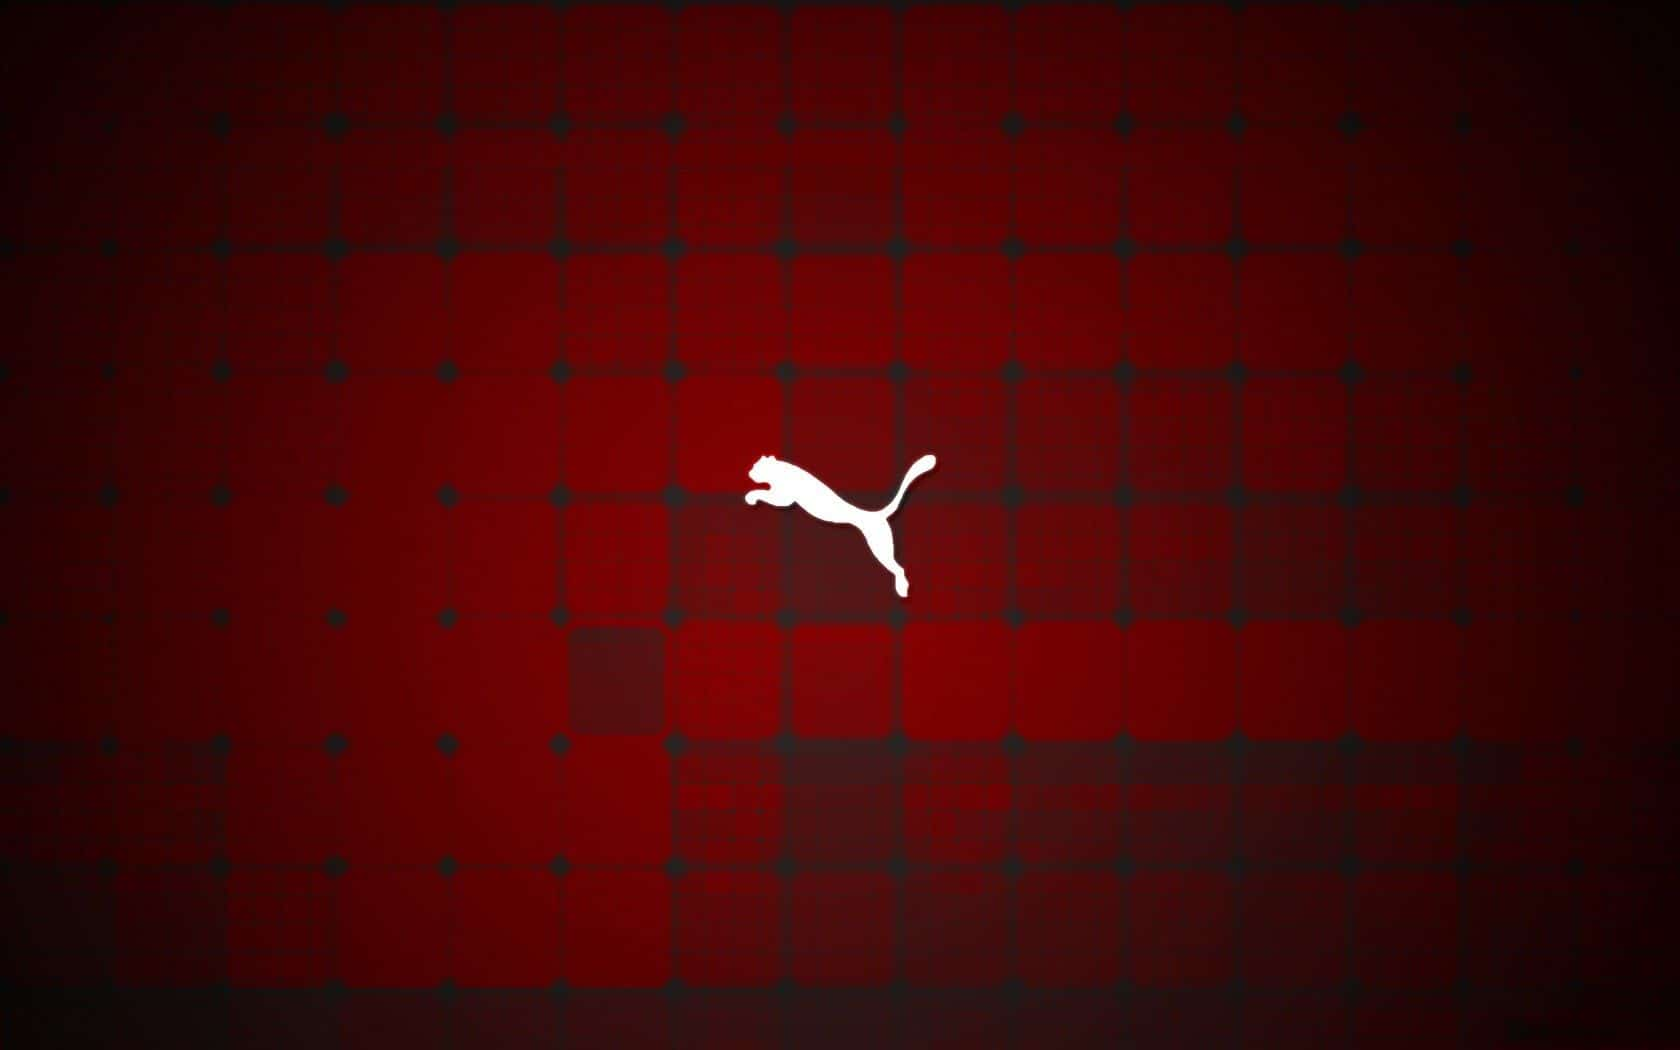 Puma Wallpapers For Mobile - Wallpaper Cave